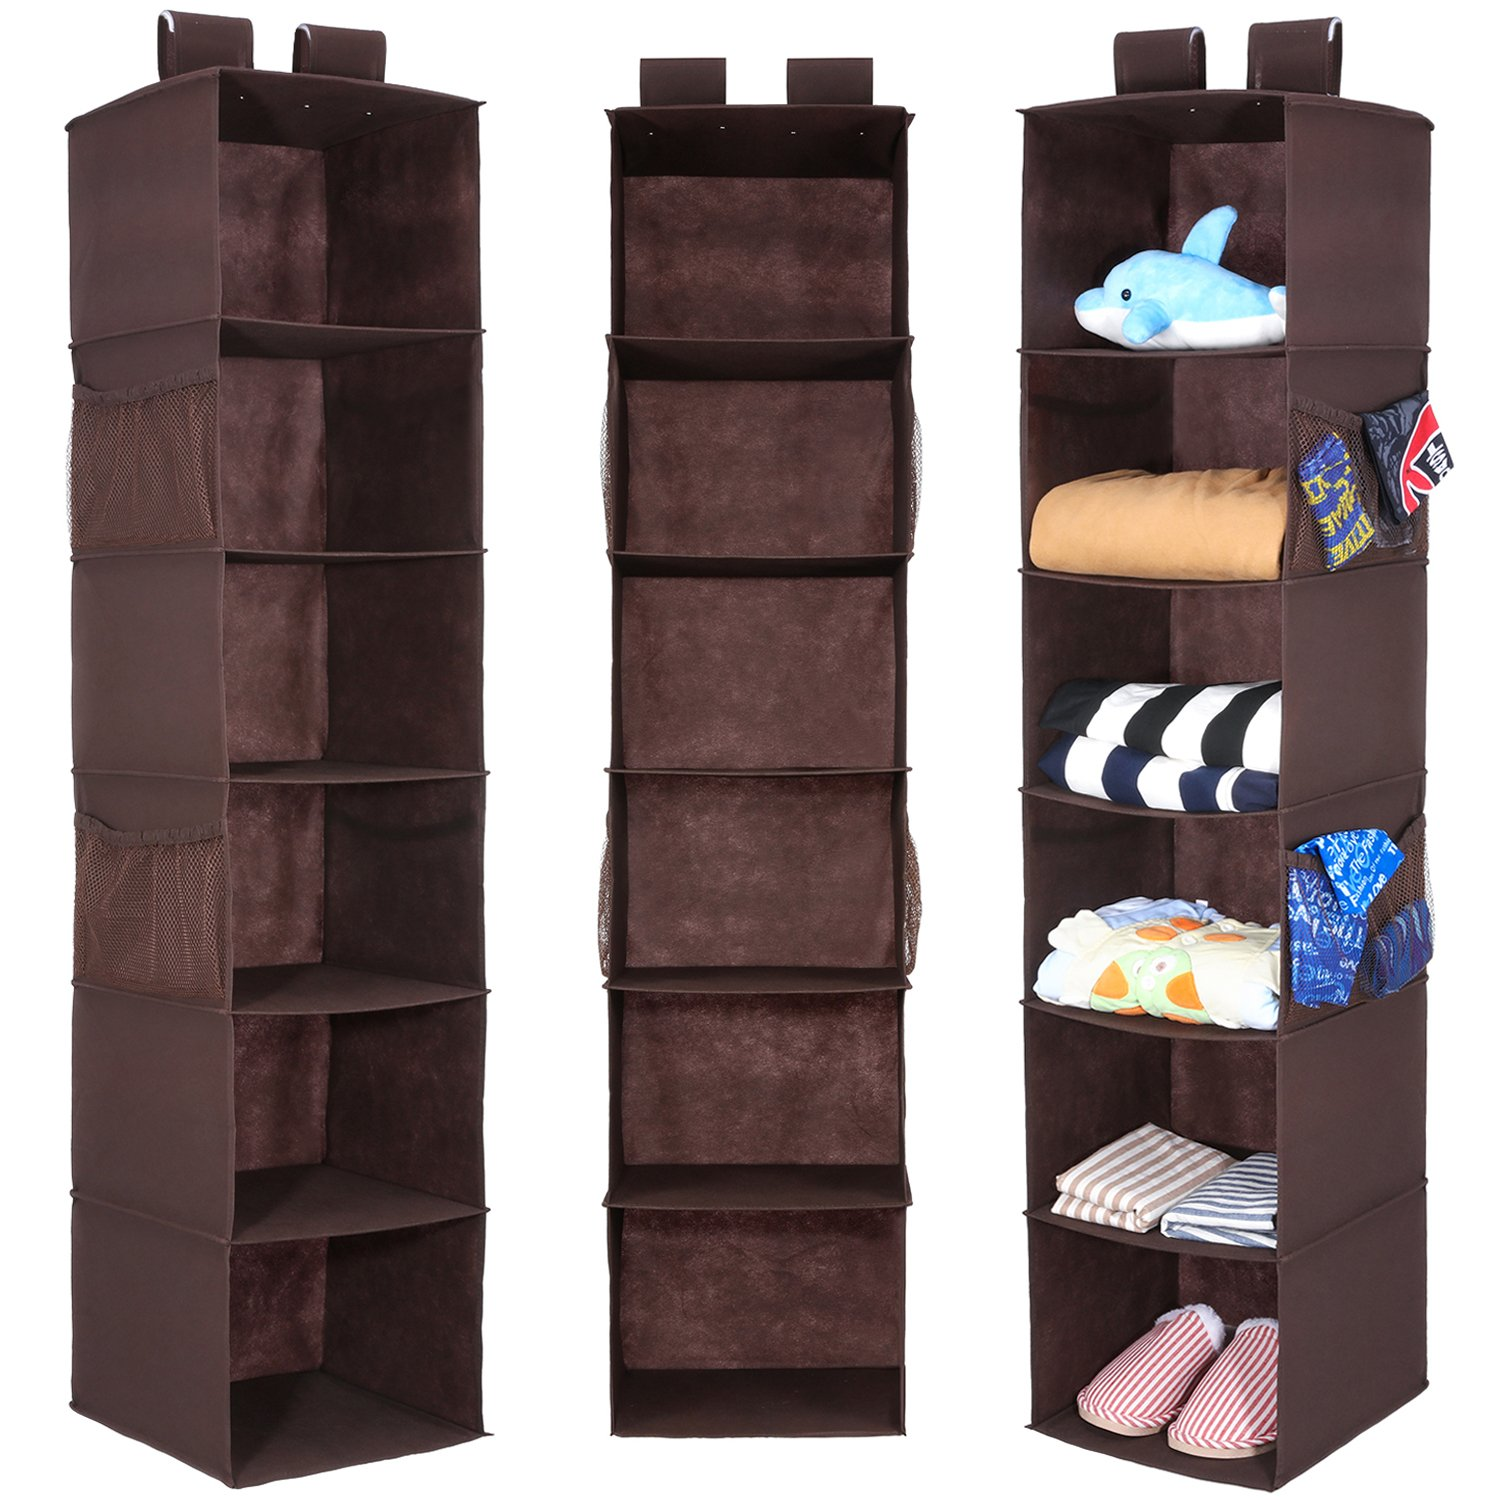 47d2e42422fe Cheap Sweater Hanging Storage, find Sweater Hanging Storage deals on ...